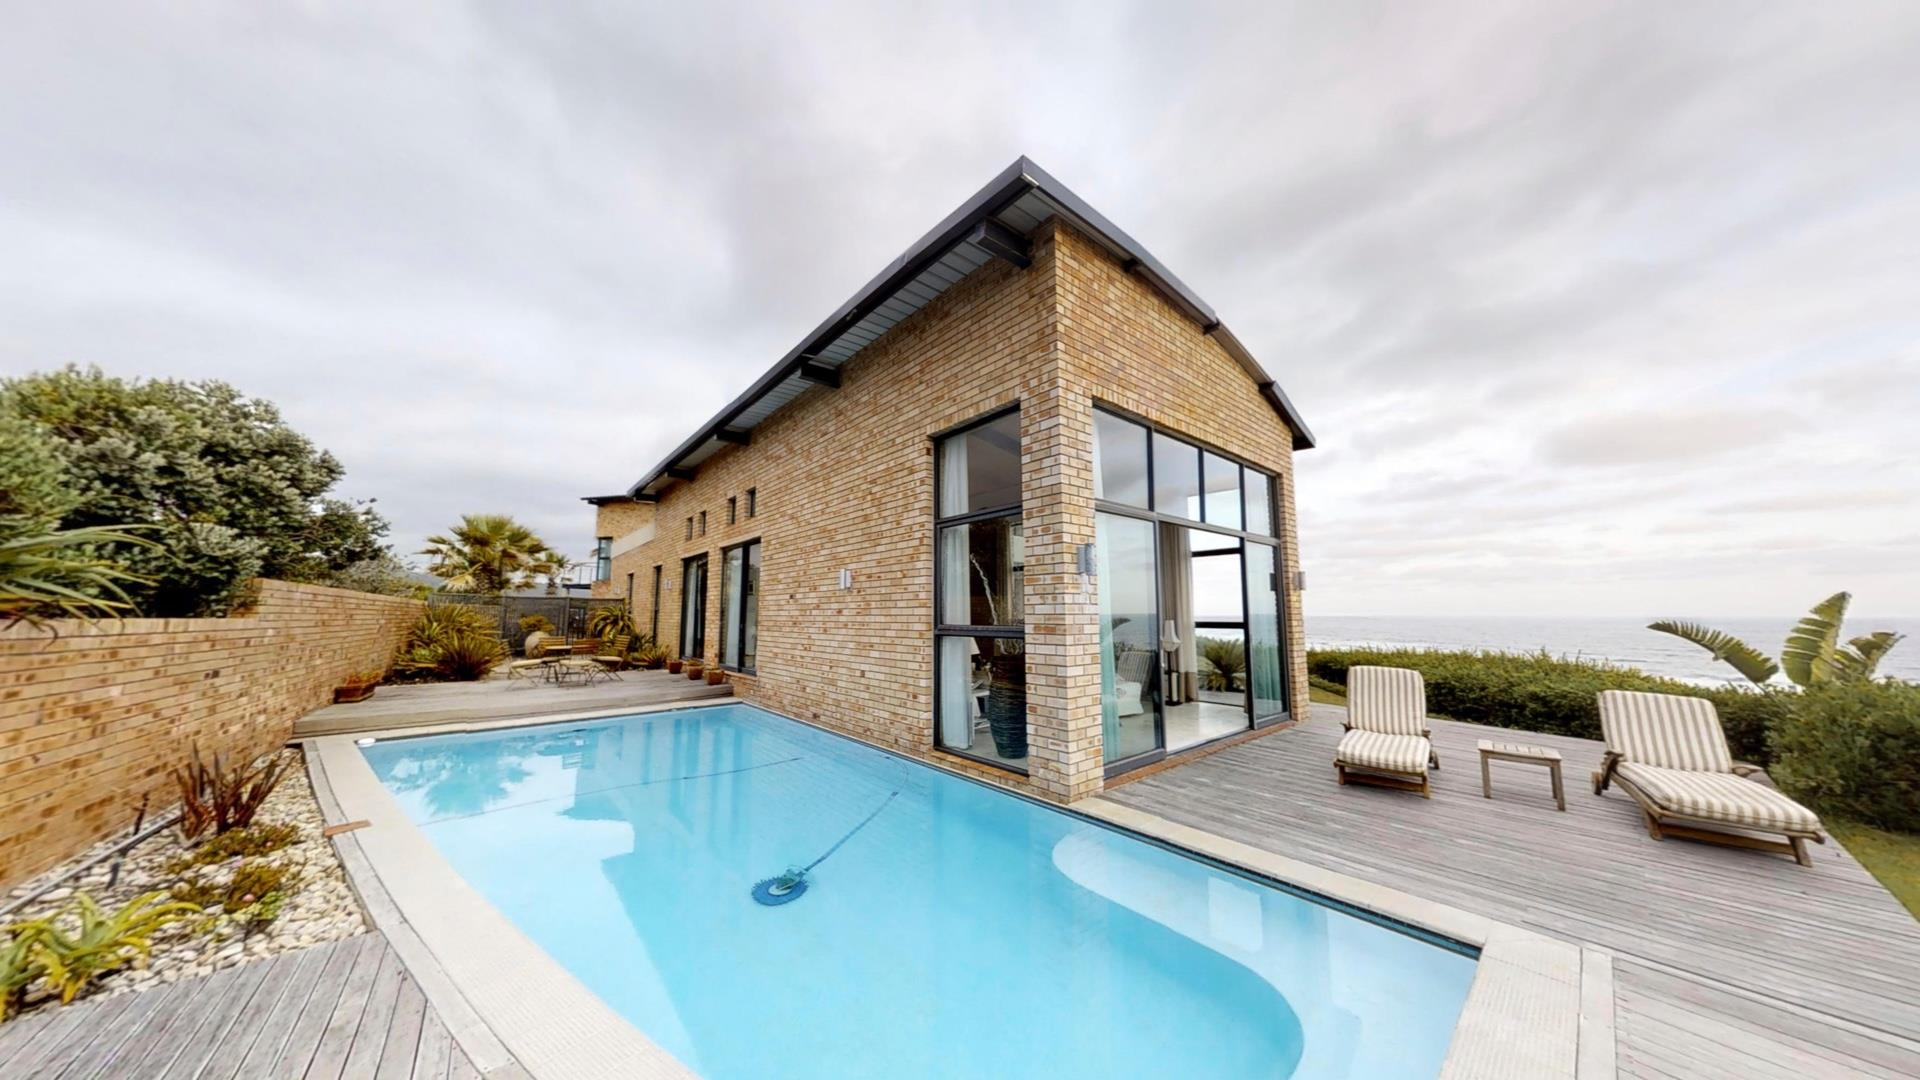 5 Bedroom House For Sale in Wilderness Central